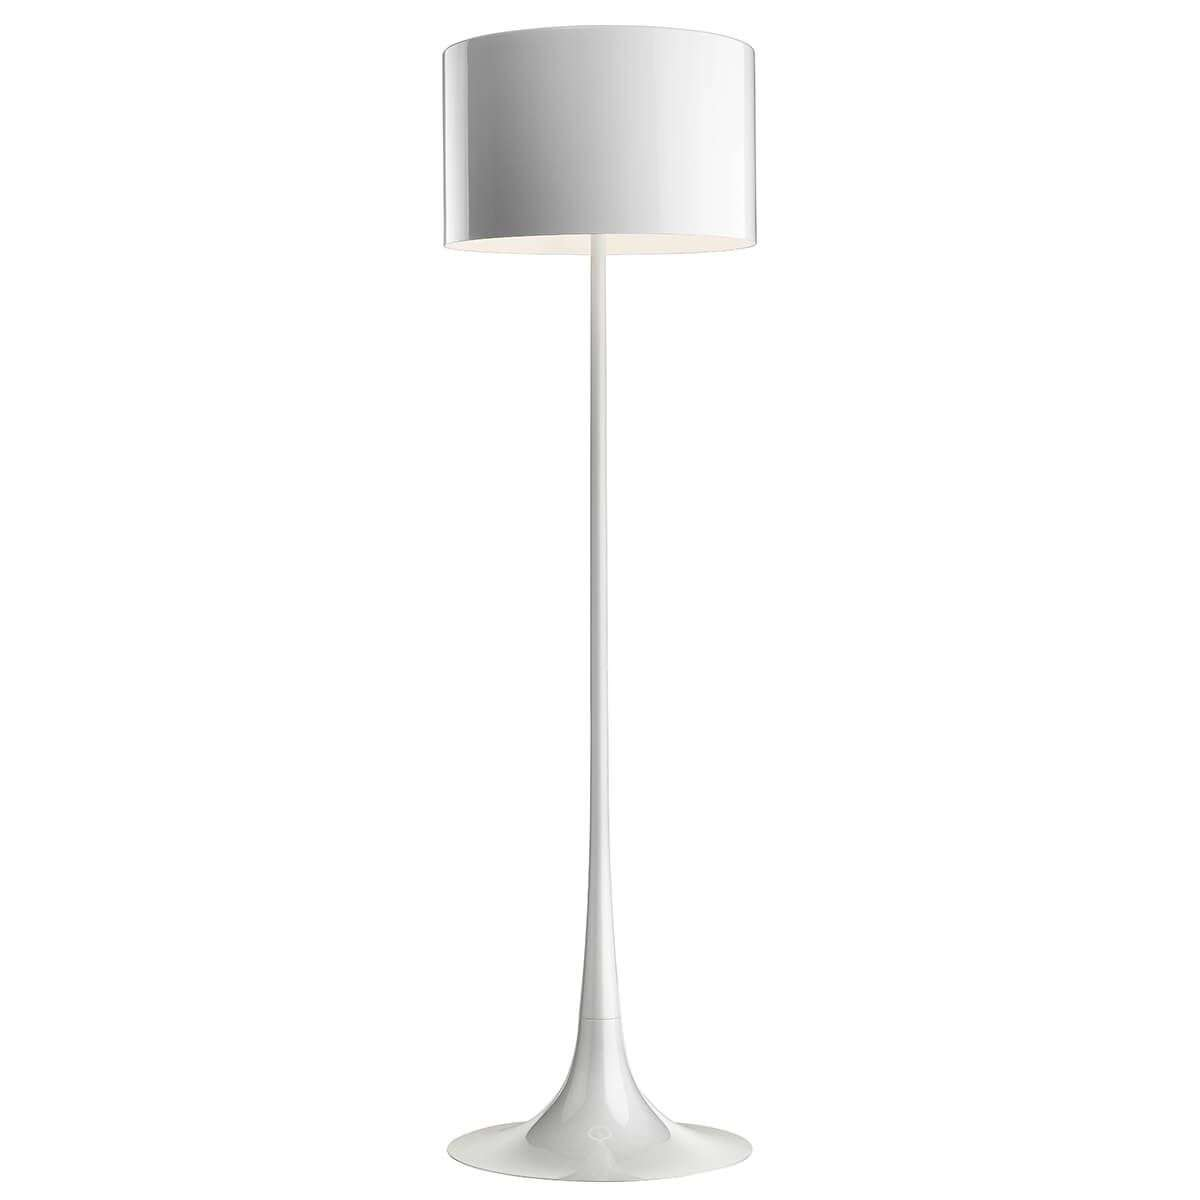 Lampadaire Spun Light F by FLOS-3510142X-31